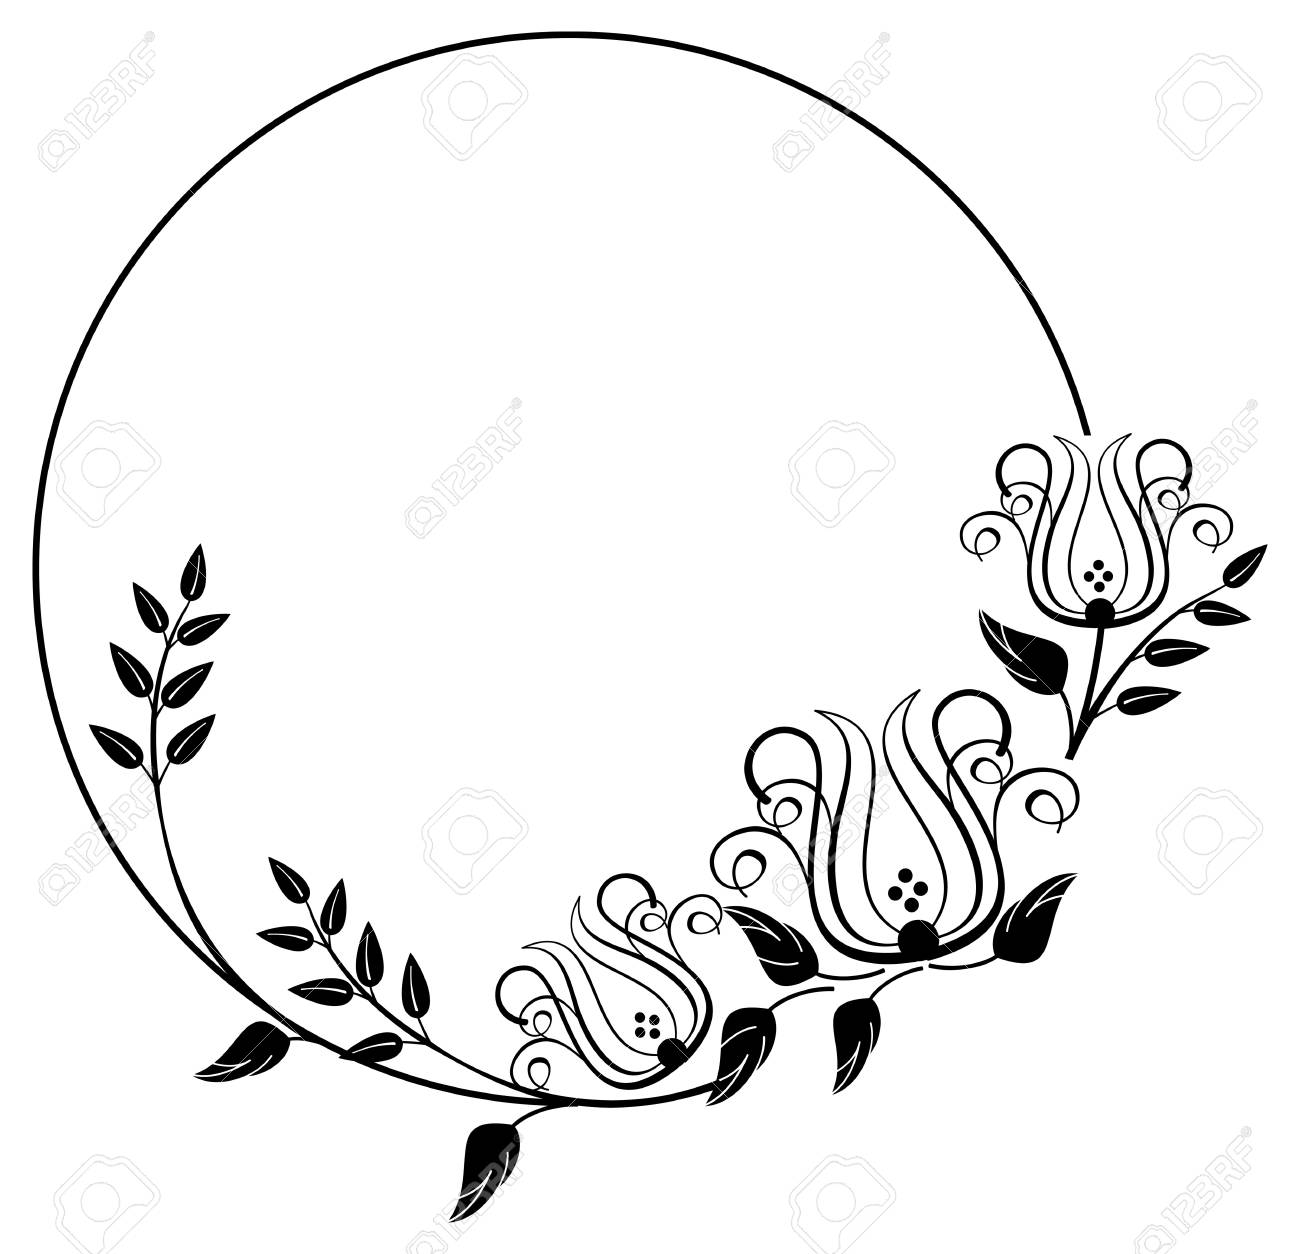 black and white round frame with floral silhouettes copy space rh 123rf com floral clipart free floral clip art designs